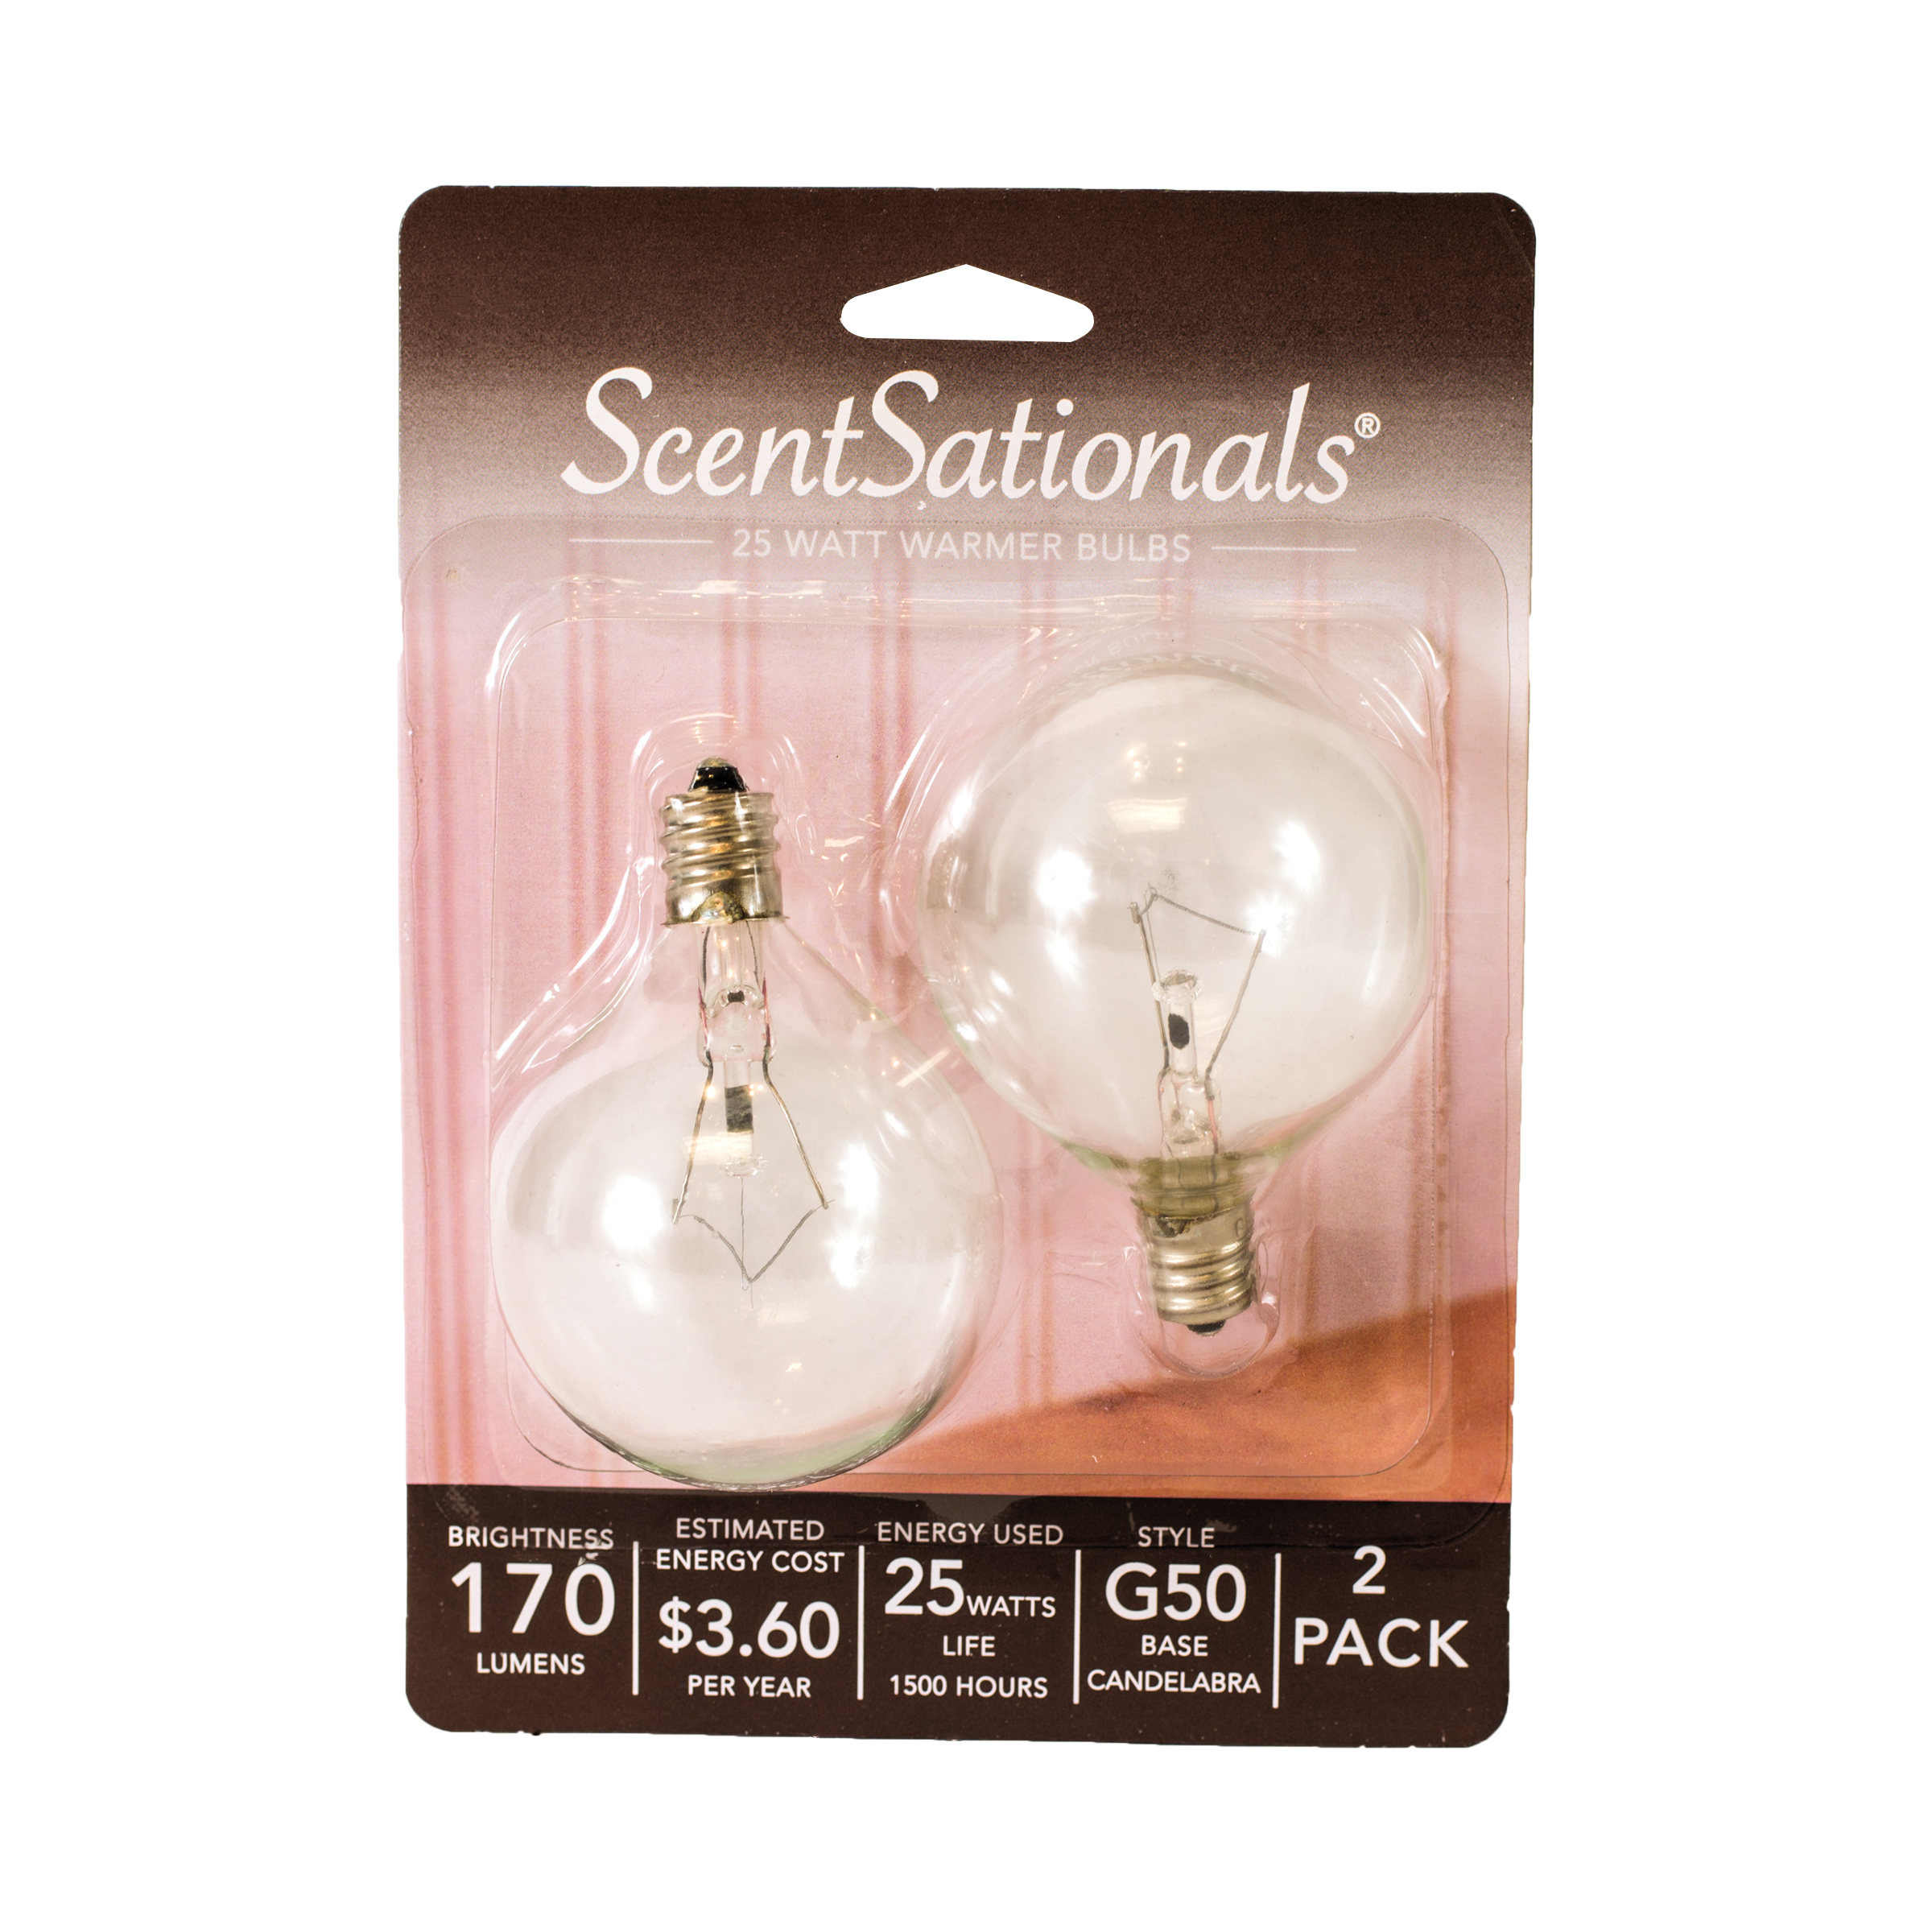 ScentSationals 25 Watt Replacement Wax Warmer Clear Light Bulbs, 2 Pack